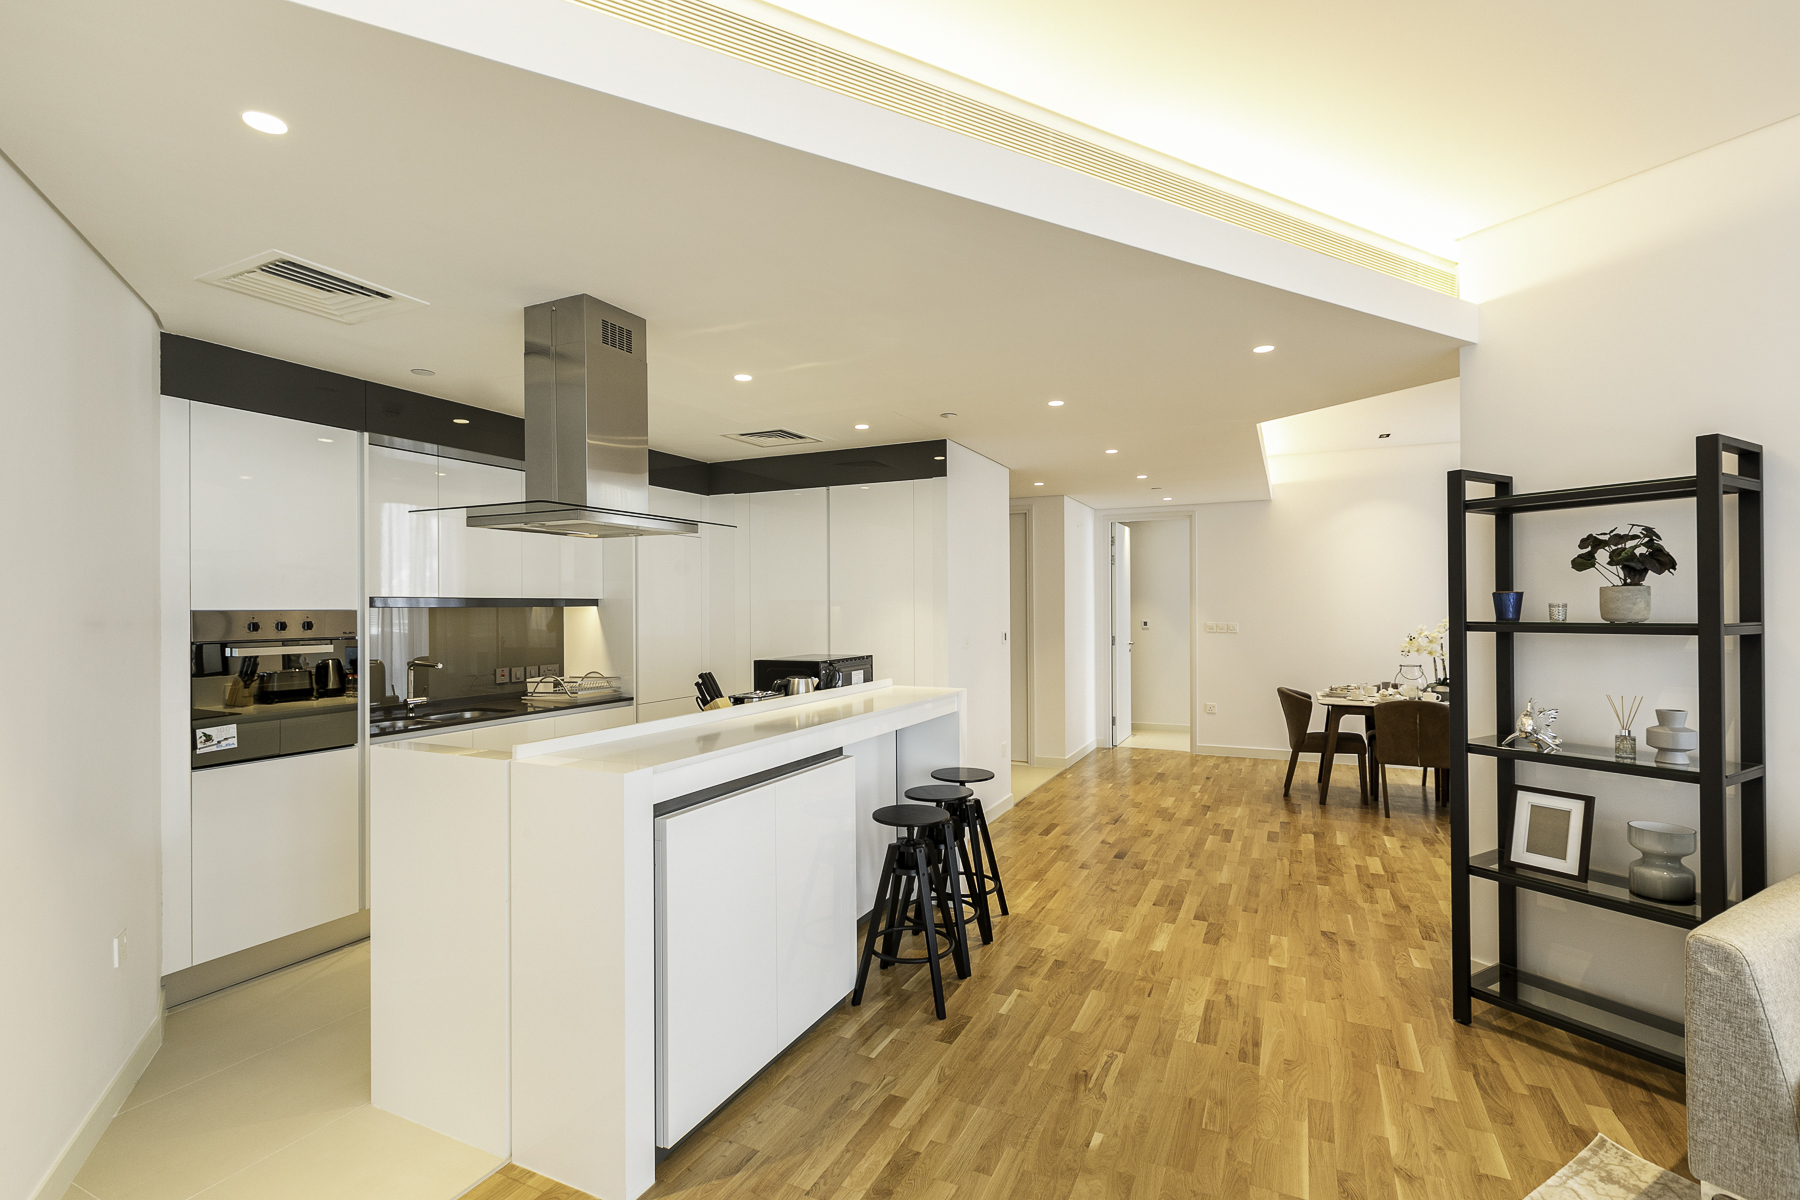 Experience the Bluewaters lifestyle On This All New 1 Bed in Building 5 photo 21298938